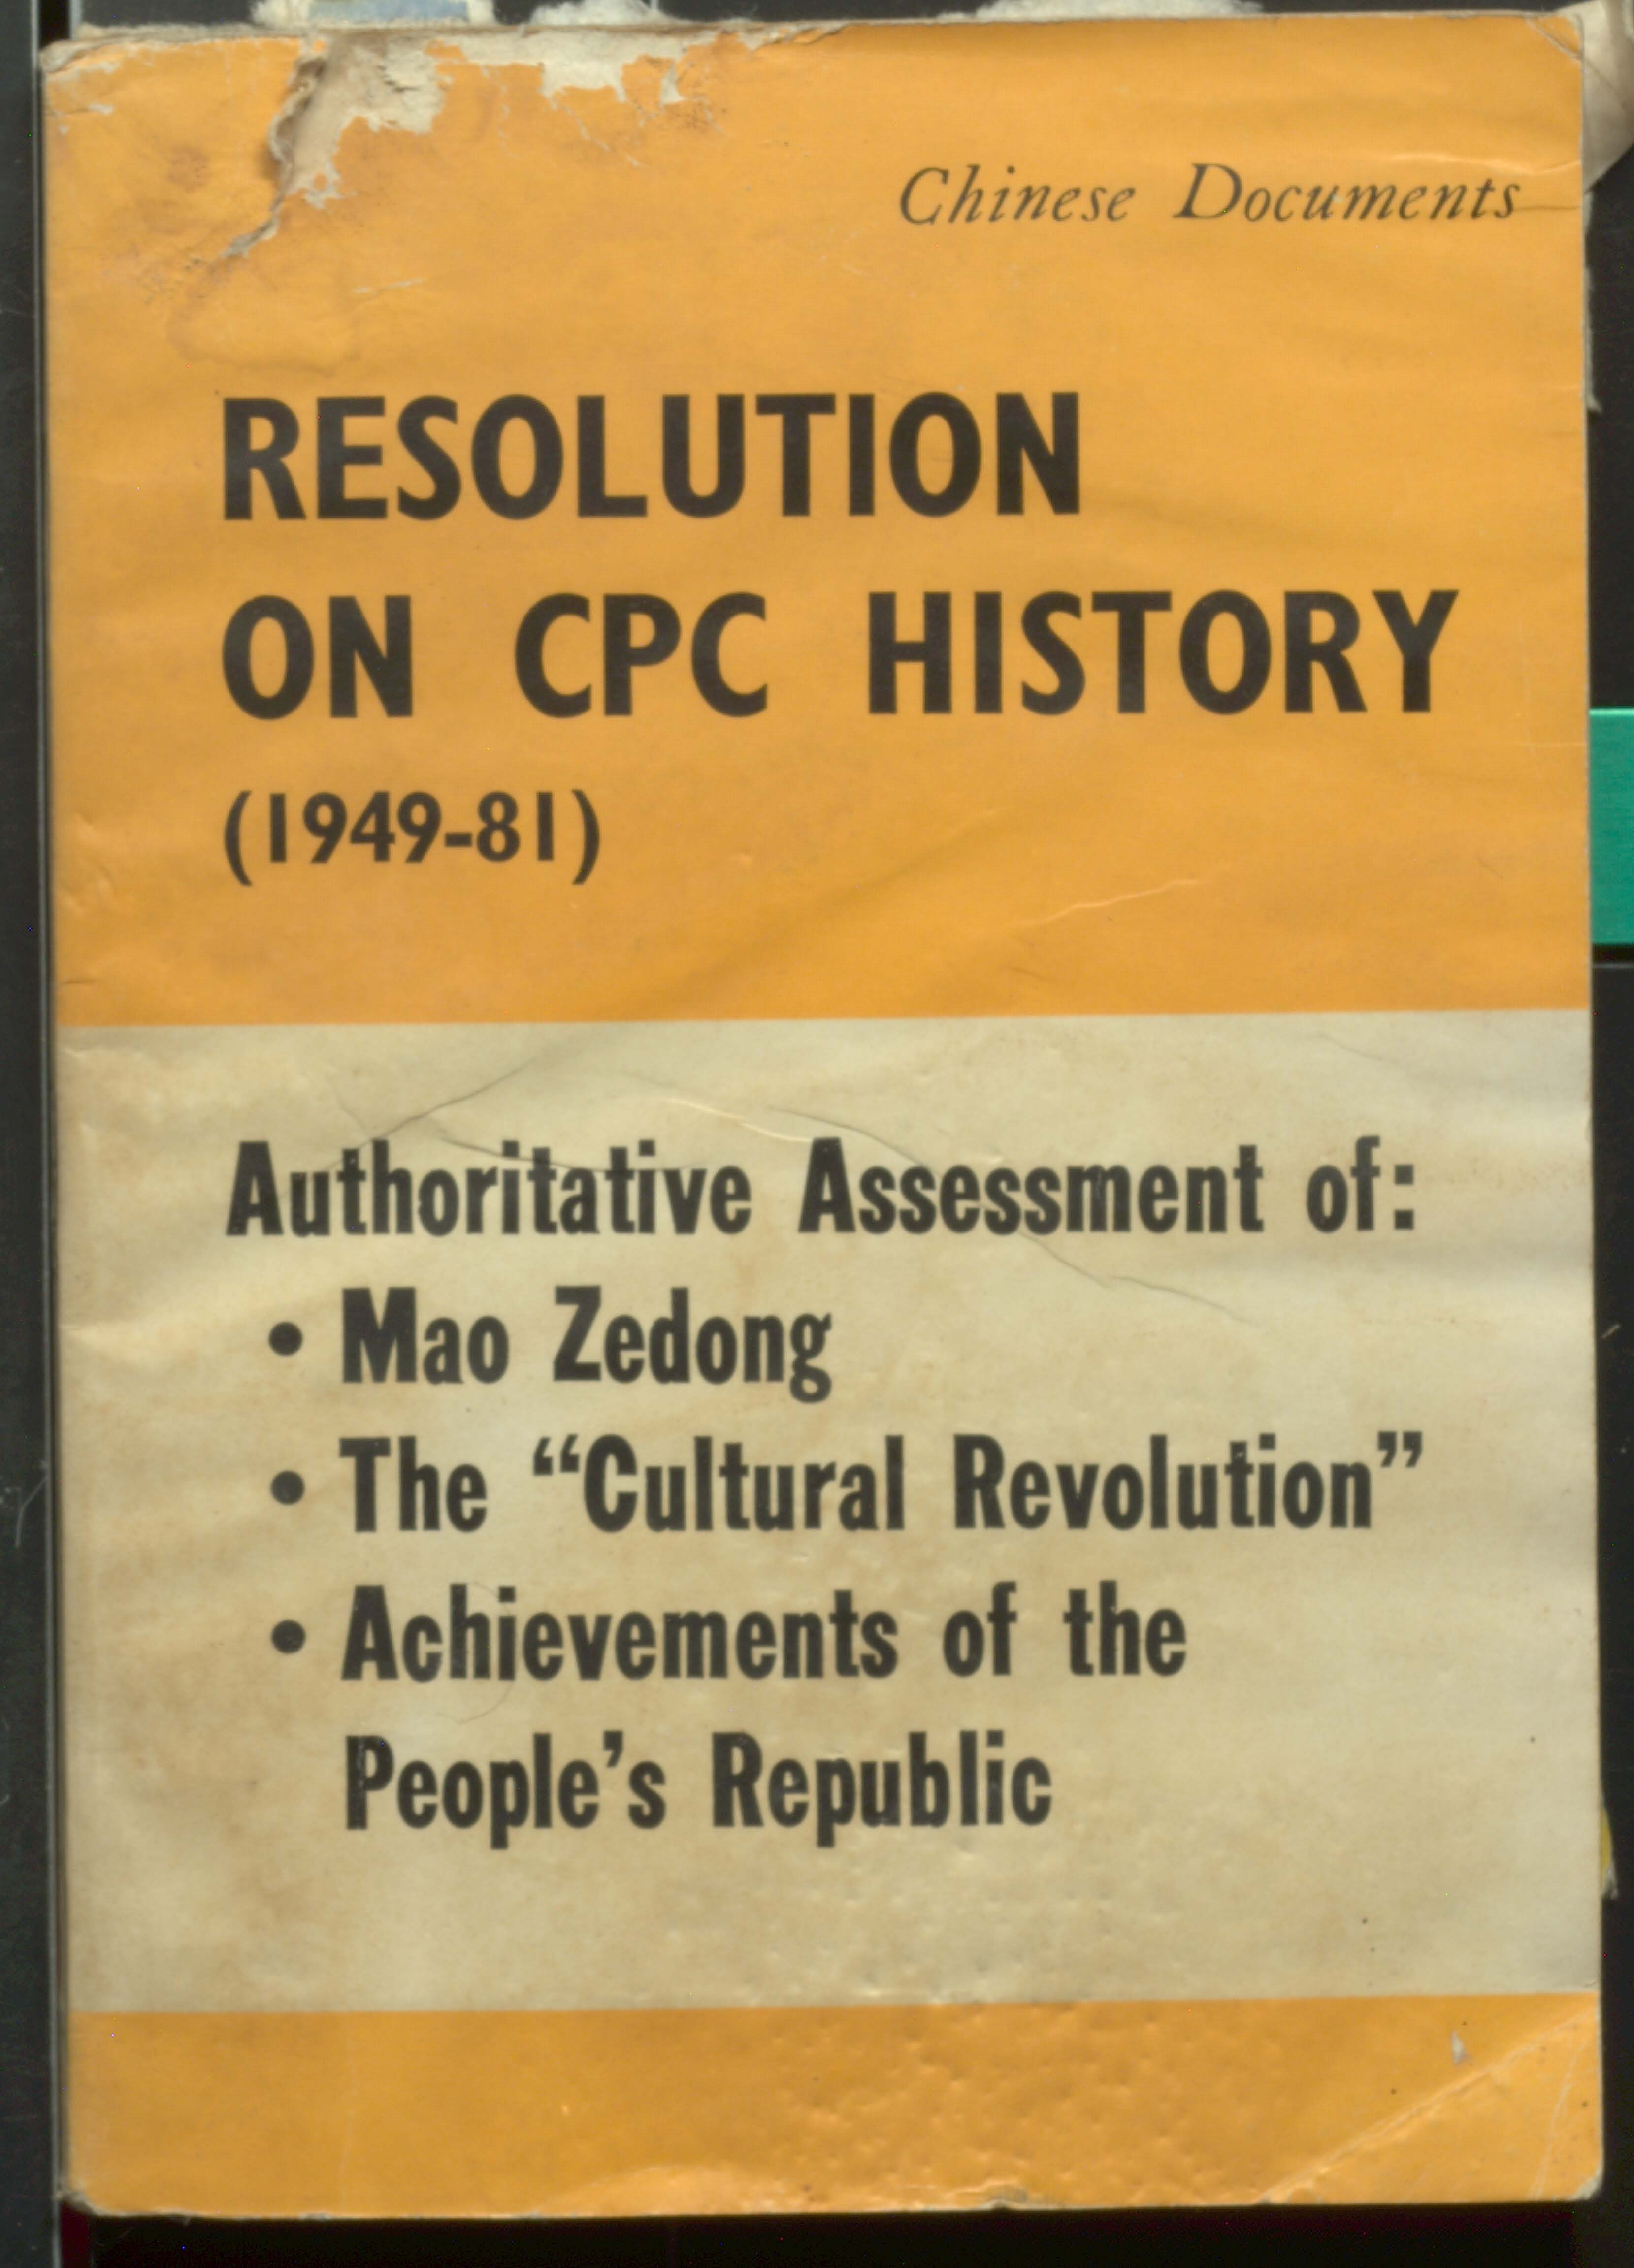 Resolution on CPC History (1949-81)